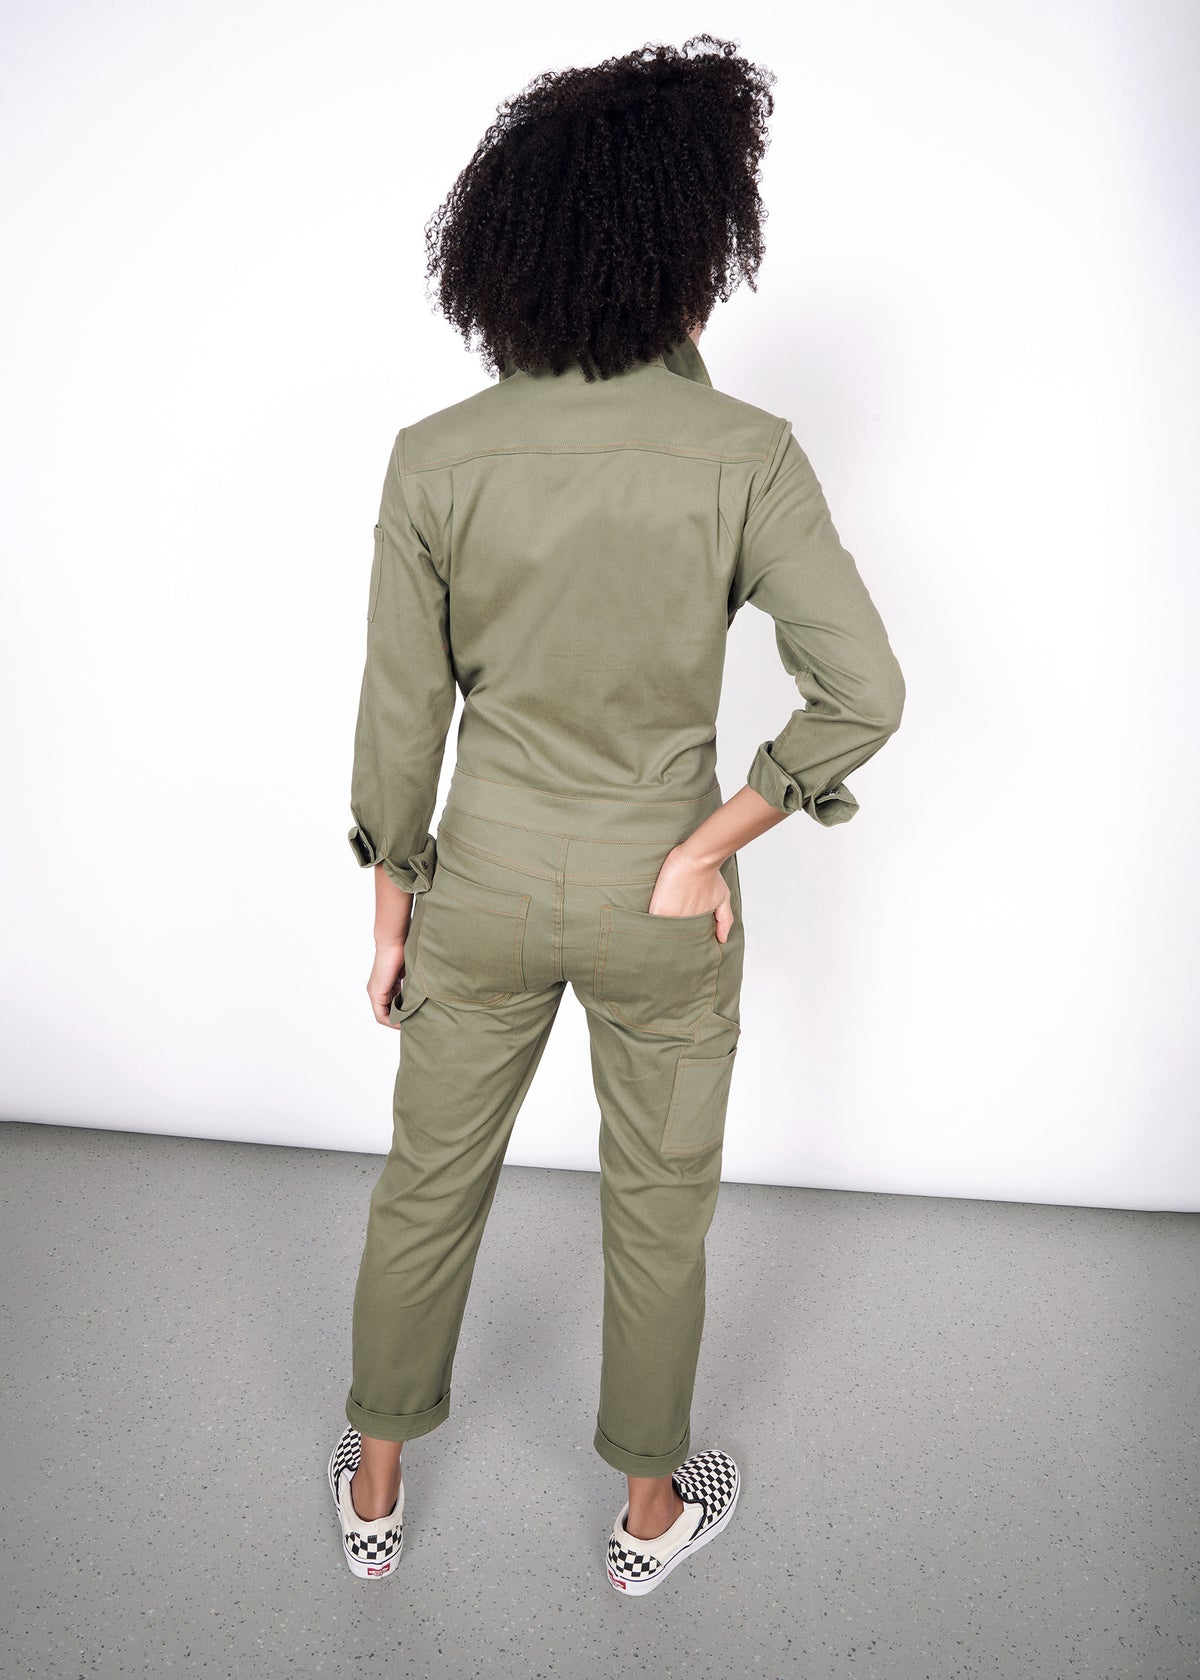 Model wearing size small olive coveralls, showing back of garment, one hand in right back pocket